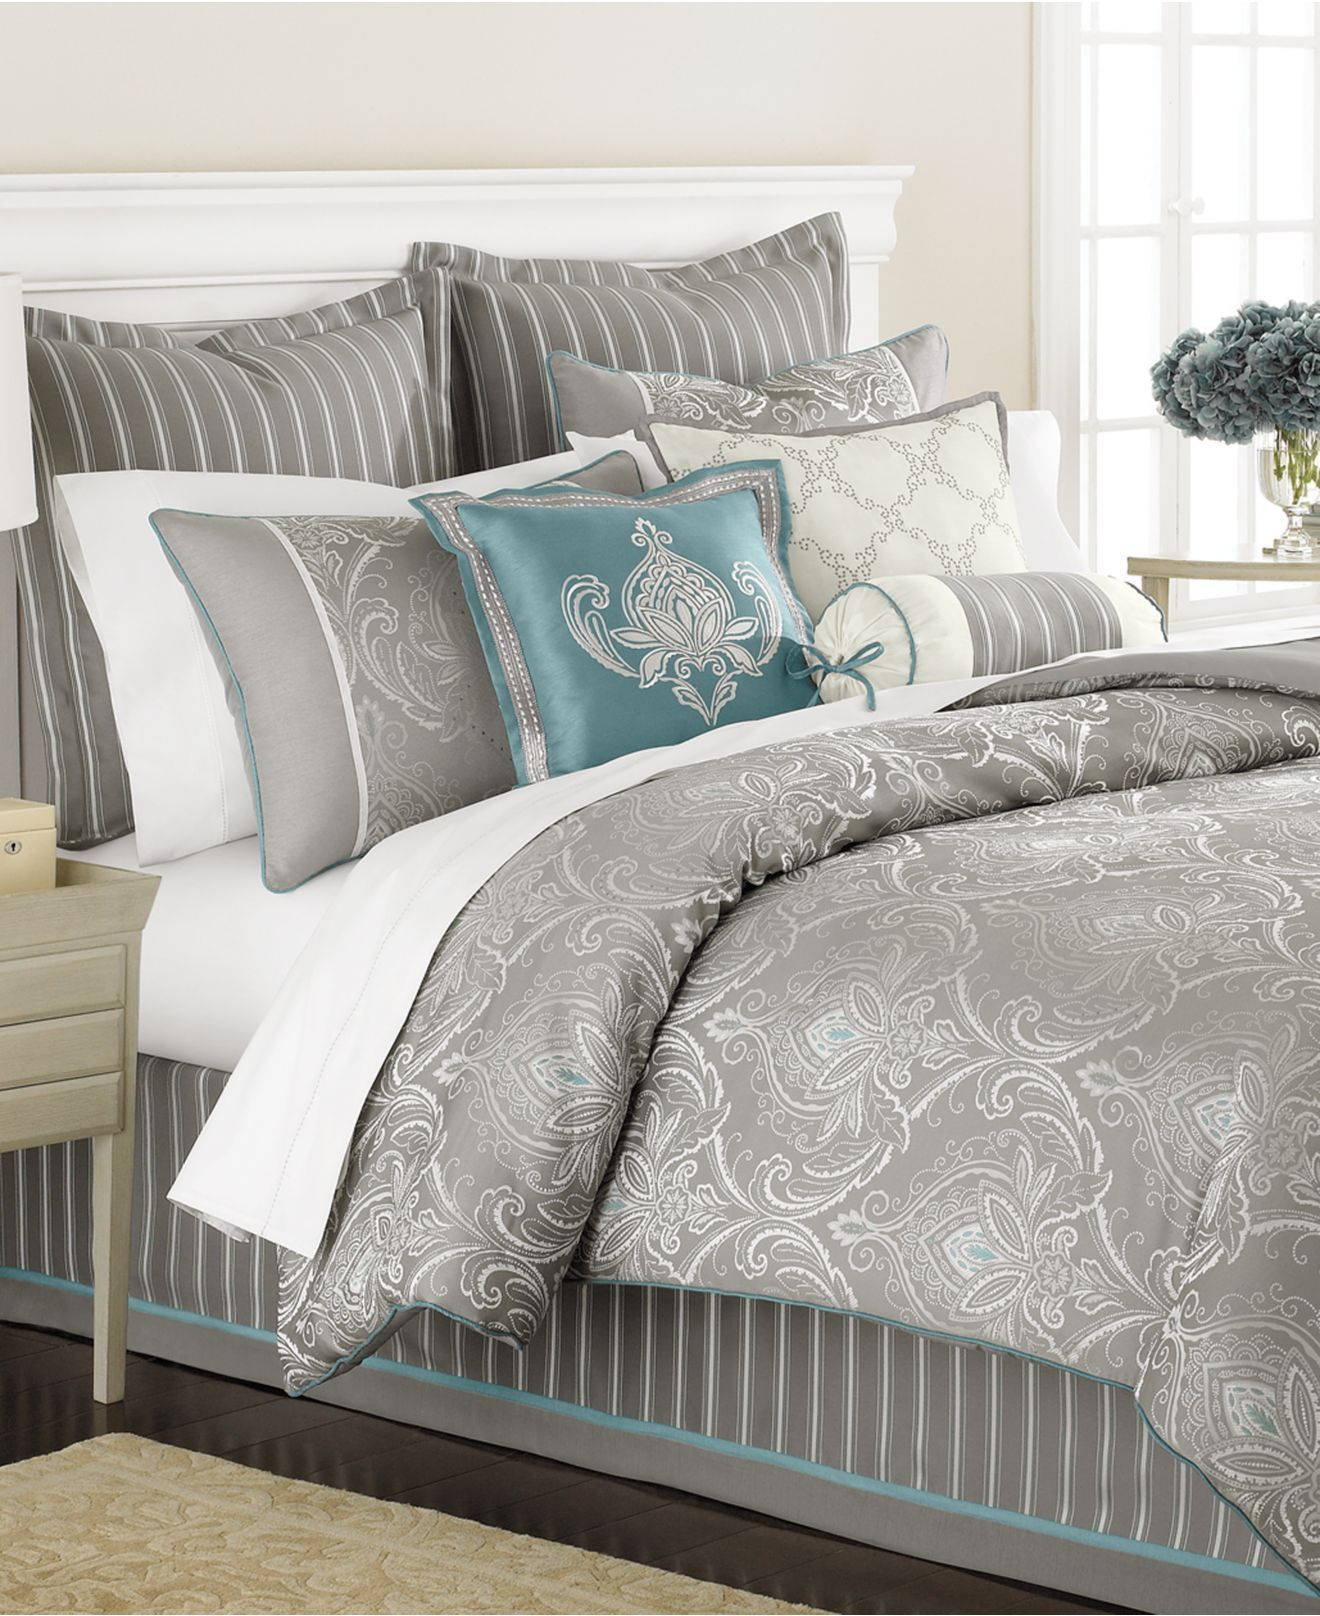 Martha Stewart Collection Bedding Briercrest 9 Piece Comforter Set King Bed Master Bedroom